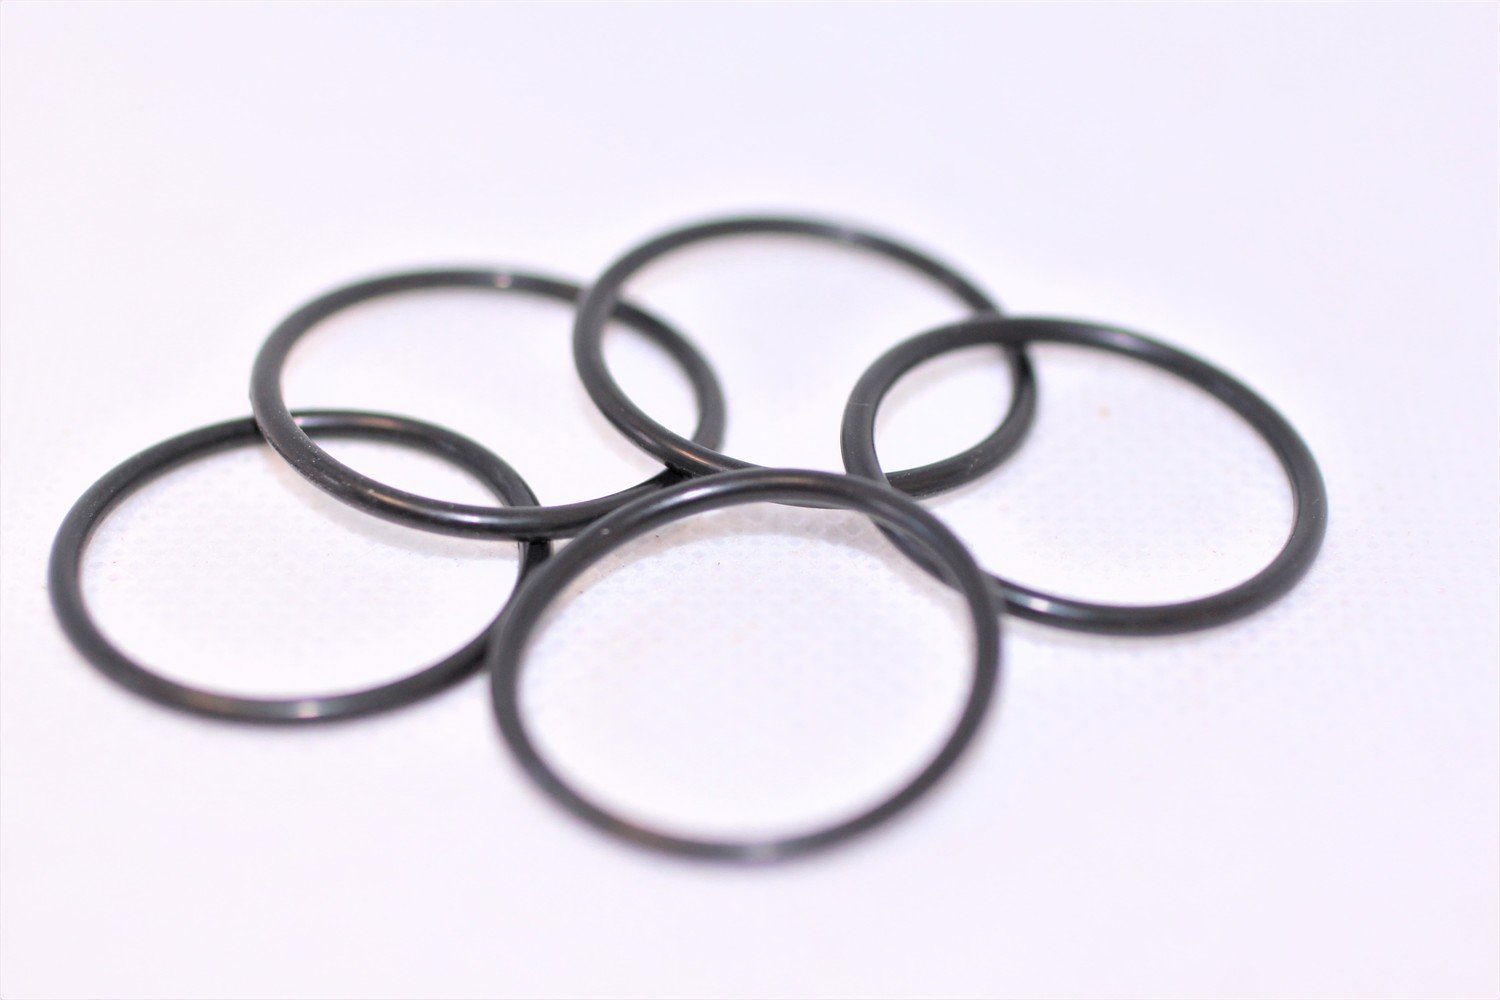 Turkey Tube Call Replacement O-Rings (5 Pack)